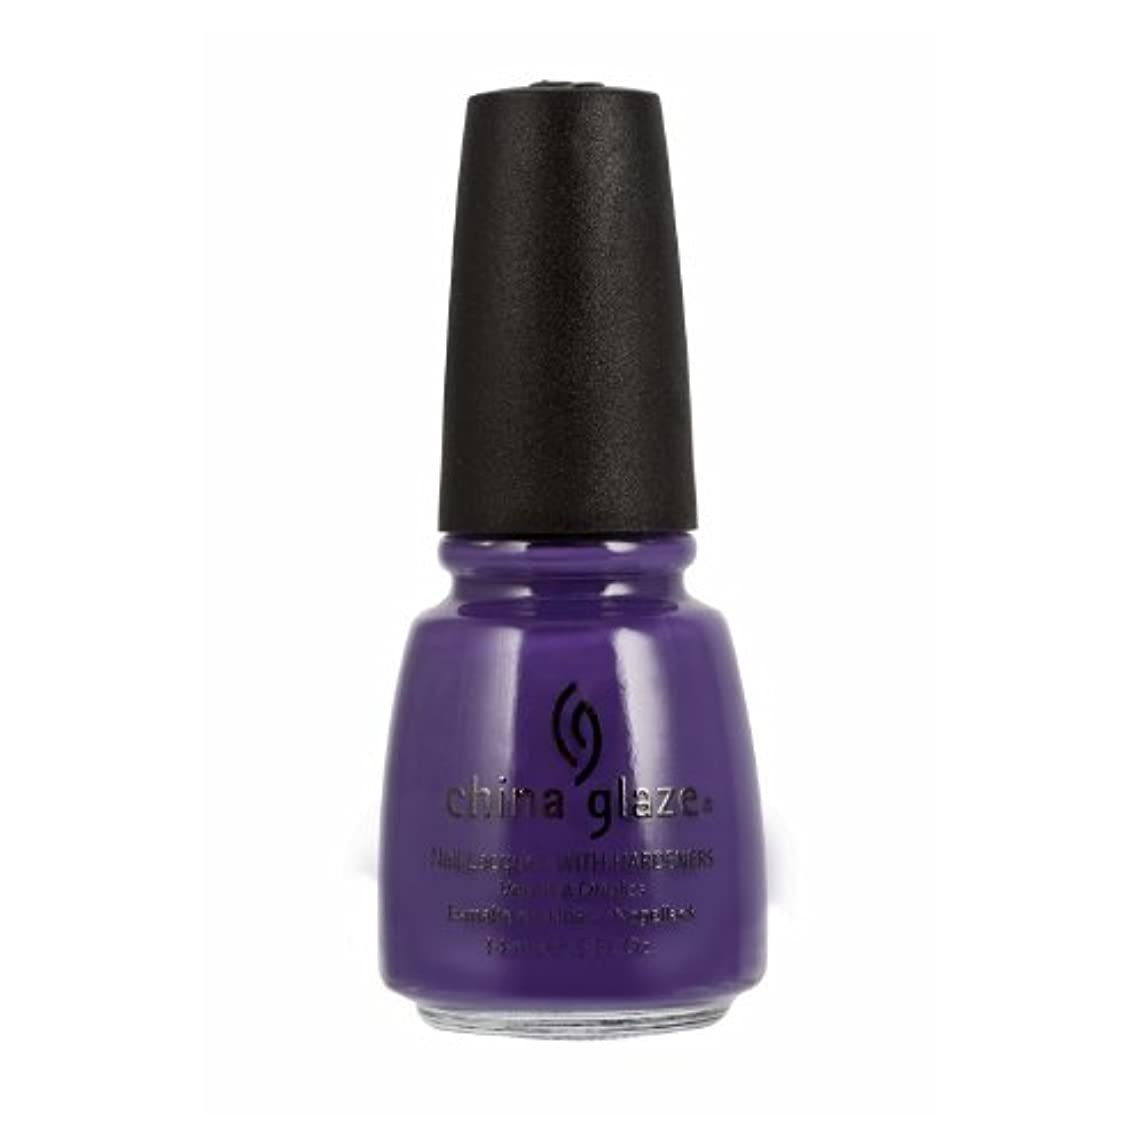 穴更新選択(3 Pack) CHINA GLAZE Nail Lacquer with Nail Hardner 2 - Grape Pop (並行輸入品)